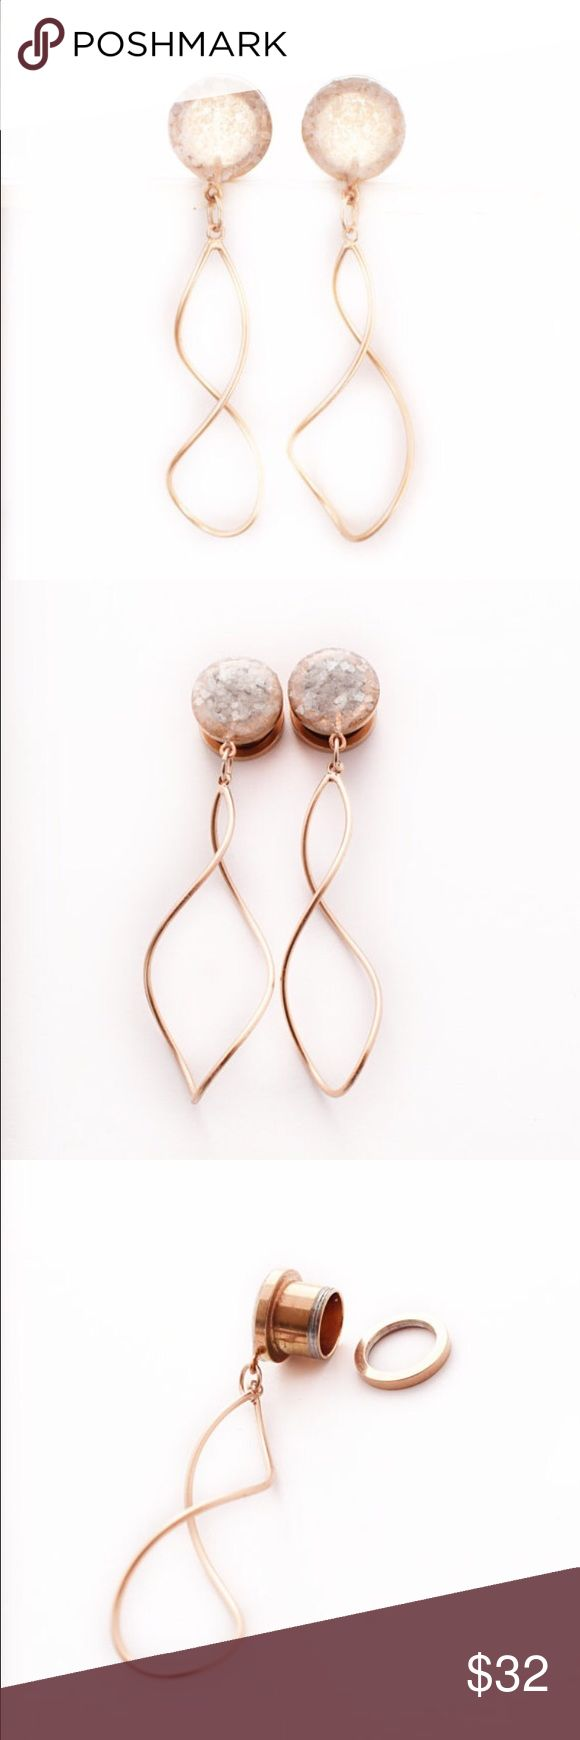 Pearl Crushed Glass Rose Gold Dangle Plugs A pair of unique and stunningly gorgeous handmade pearl crushed glass with dangle on rose gold plugs.  The pearl glass is sealed in such a beautiful way to show off it's texture and shine.   These are available in 6g, 4g, 2g, 0g, 00g, 1/2in, 9/16in, and 5/8in  These beautiful plugs are on a hollow rose gold anodized titanium plated 316L surgical steel base. They are a screw on plug making them easy to put on and not have to worry about them falling…